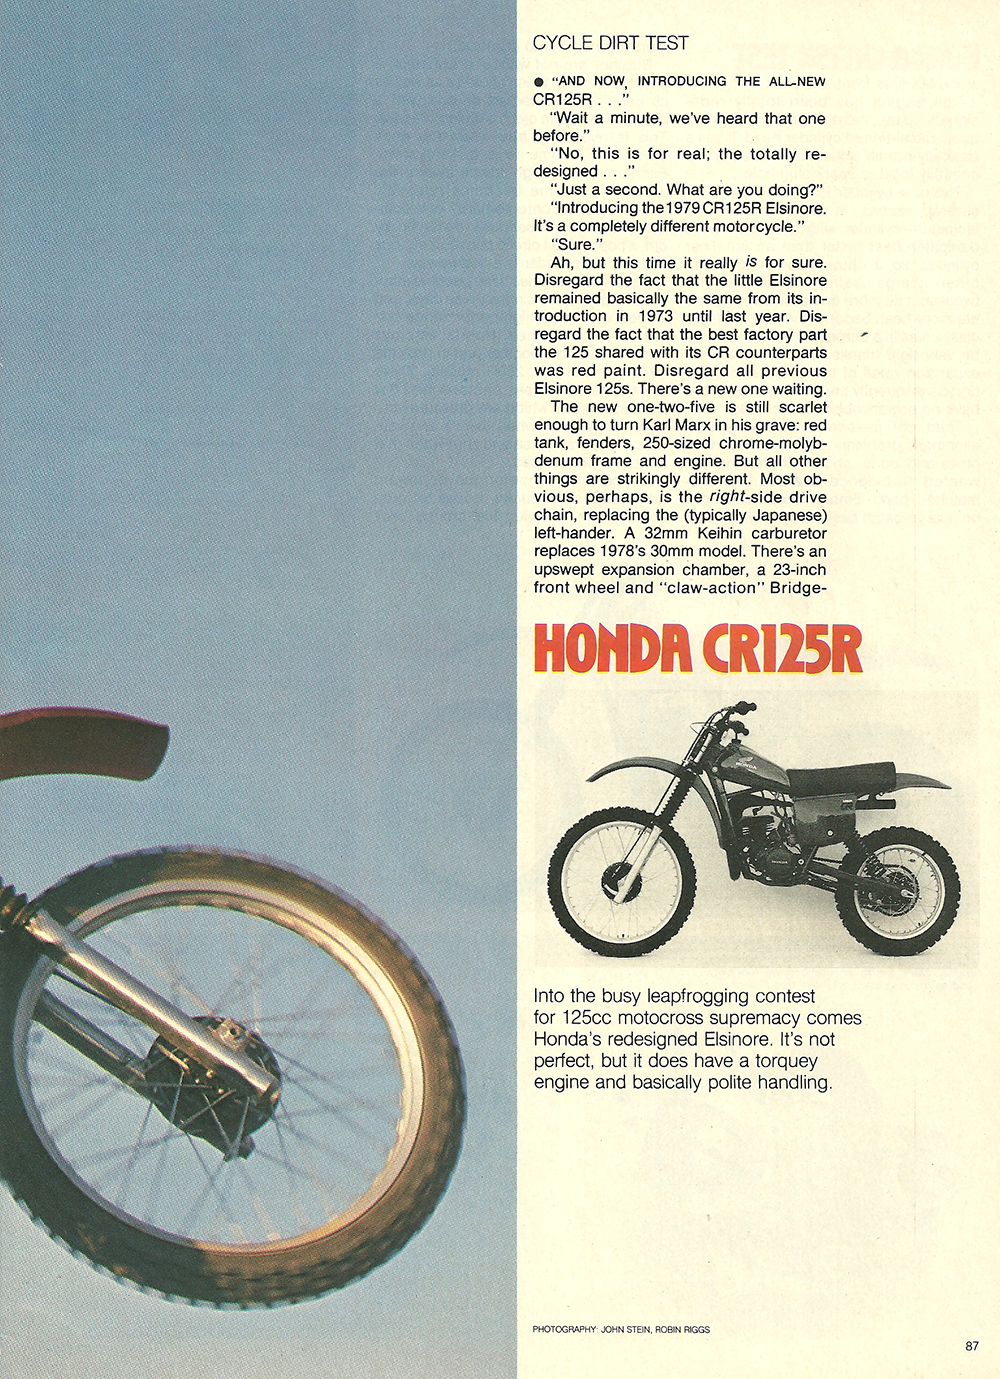 1979 Honda CR125R road test 02.jpg